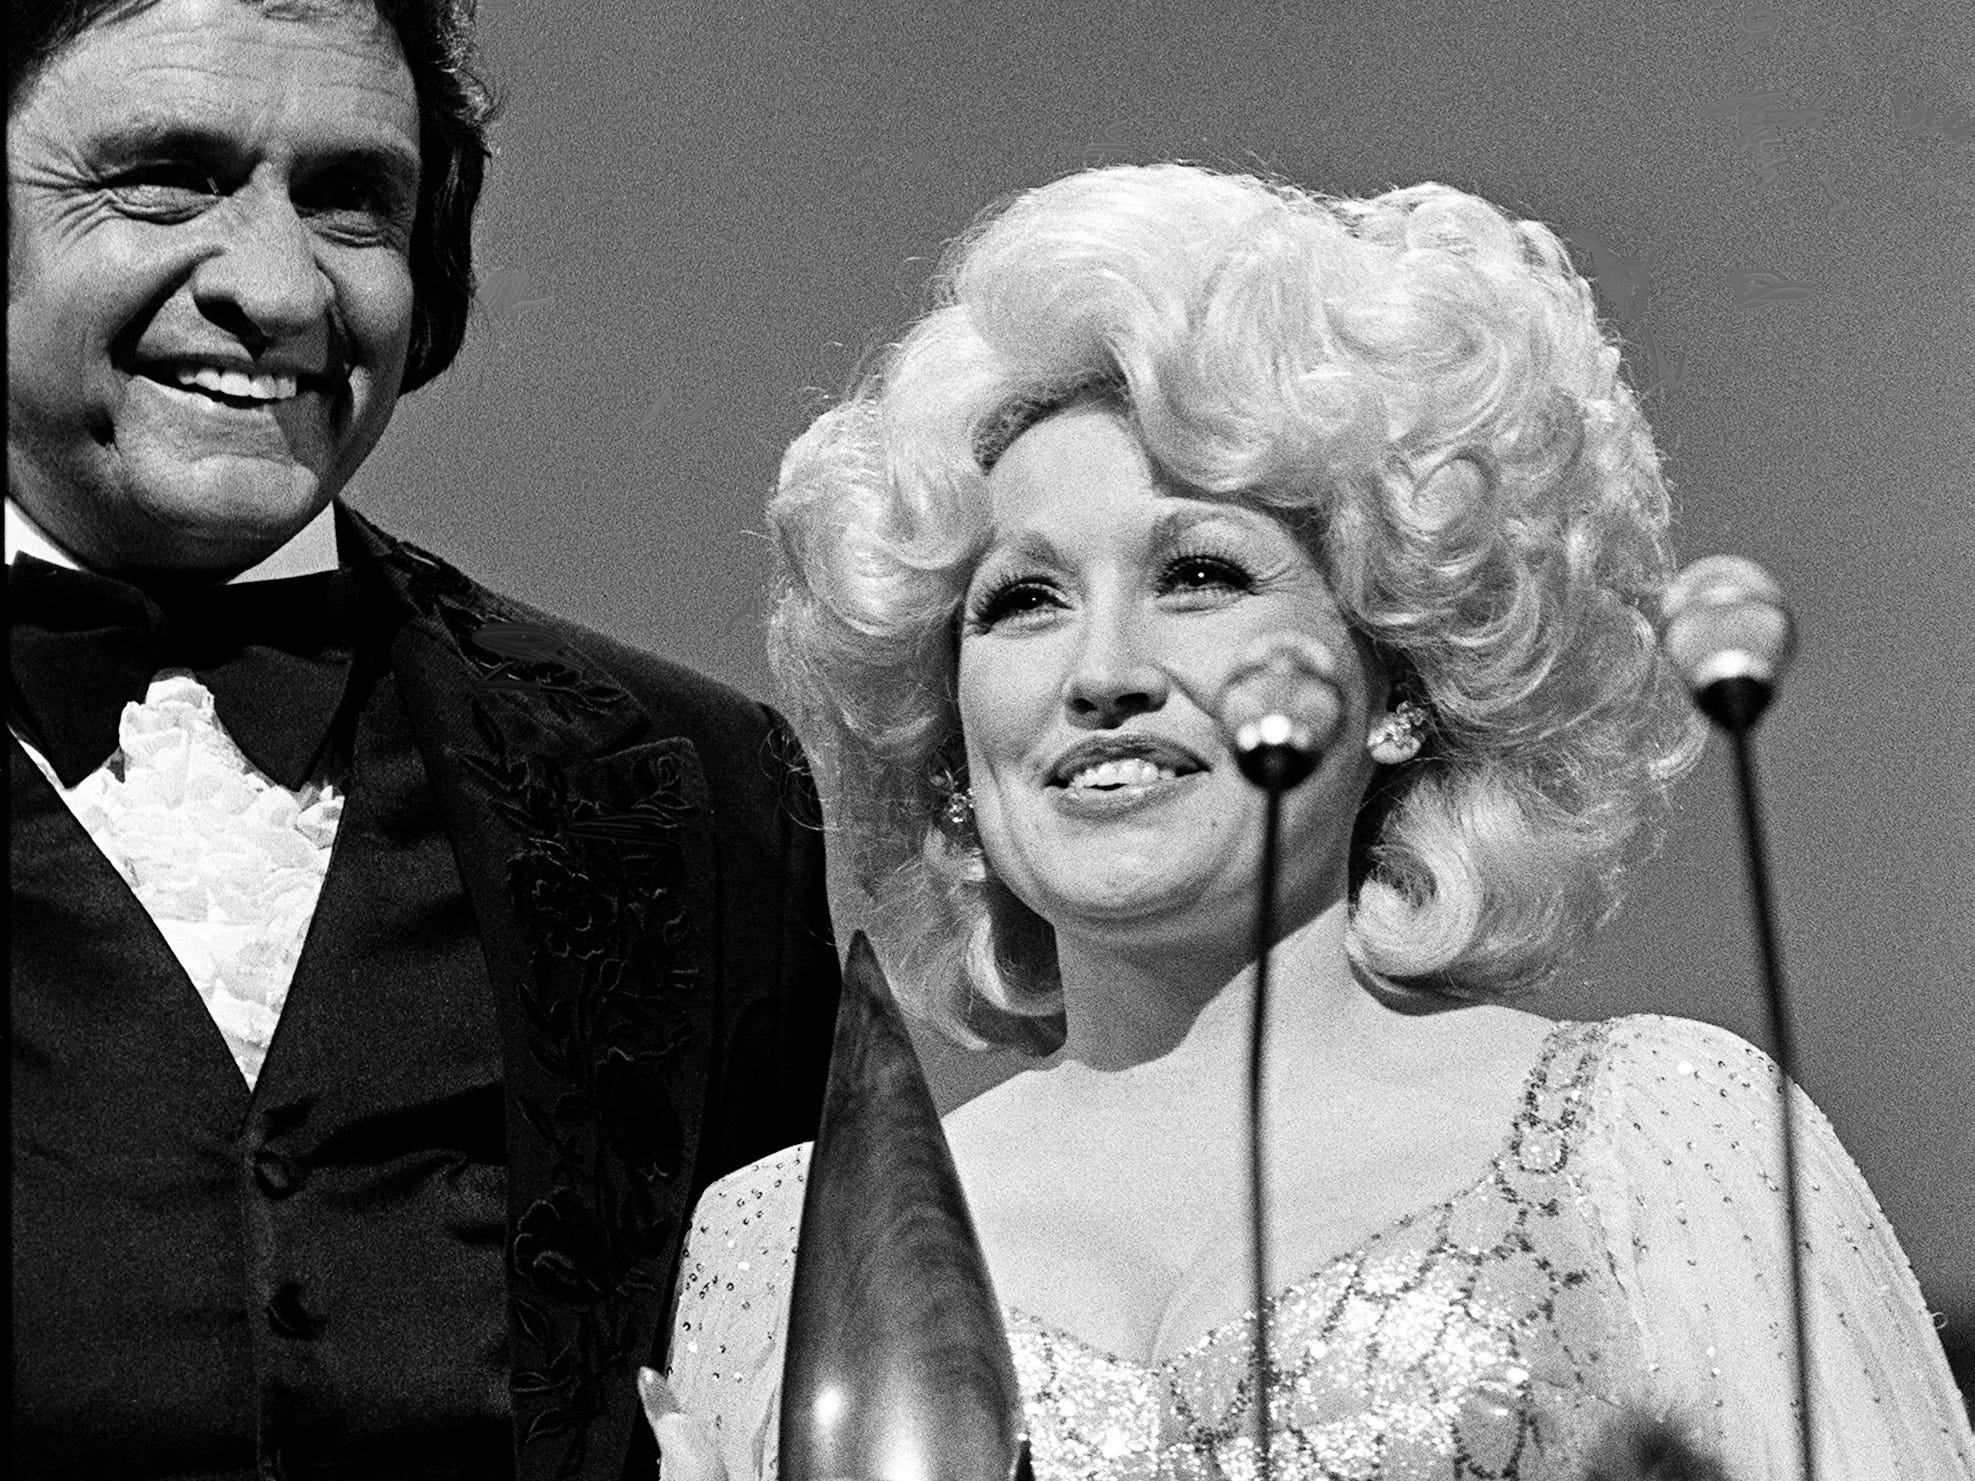 Dolly Parton accepts the Entertainer of the Year award during the 12th annual CMA Awards show Oct. 9, 1978, as presenter and host Johnny Cash looks on.